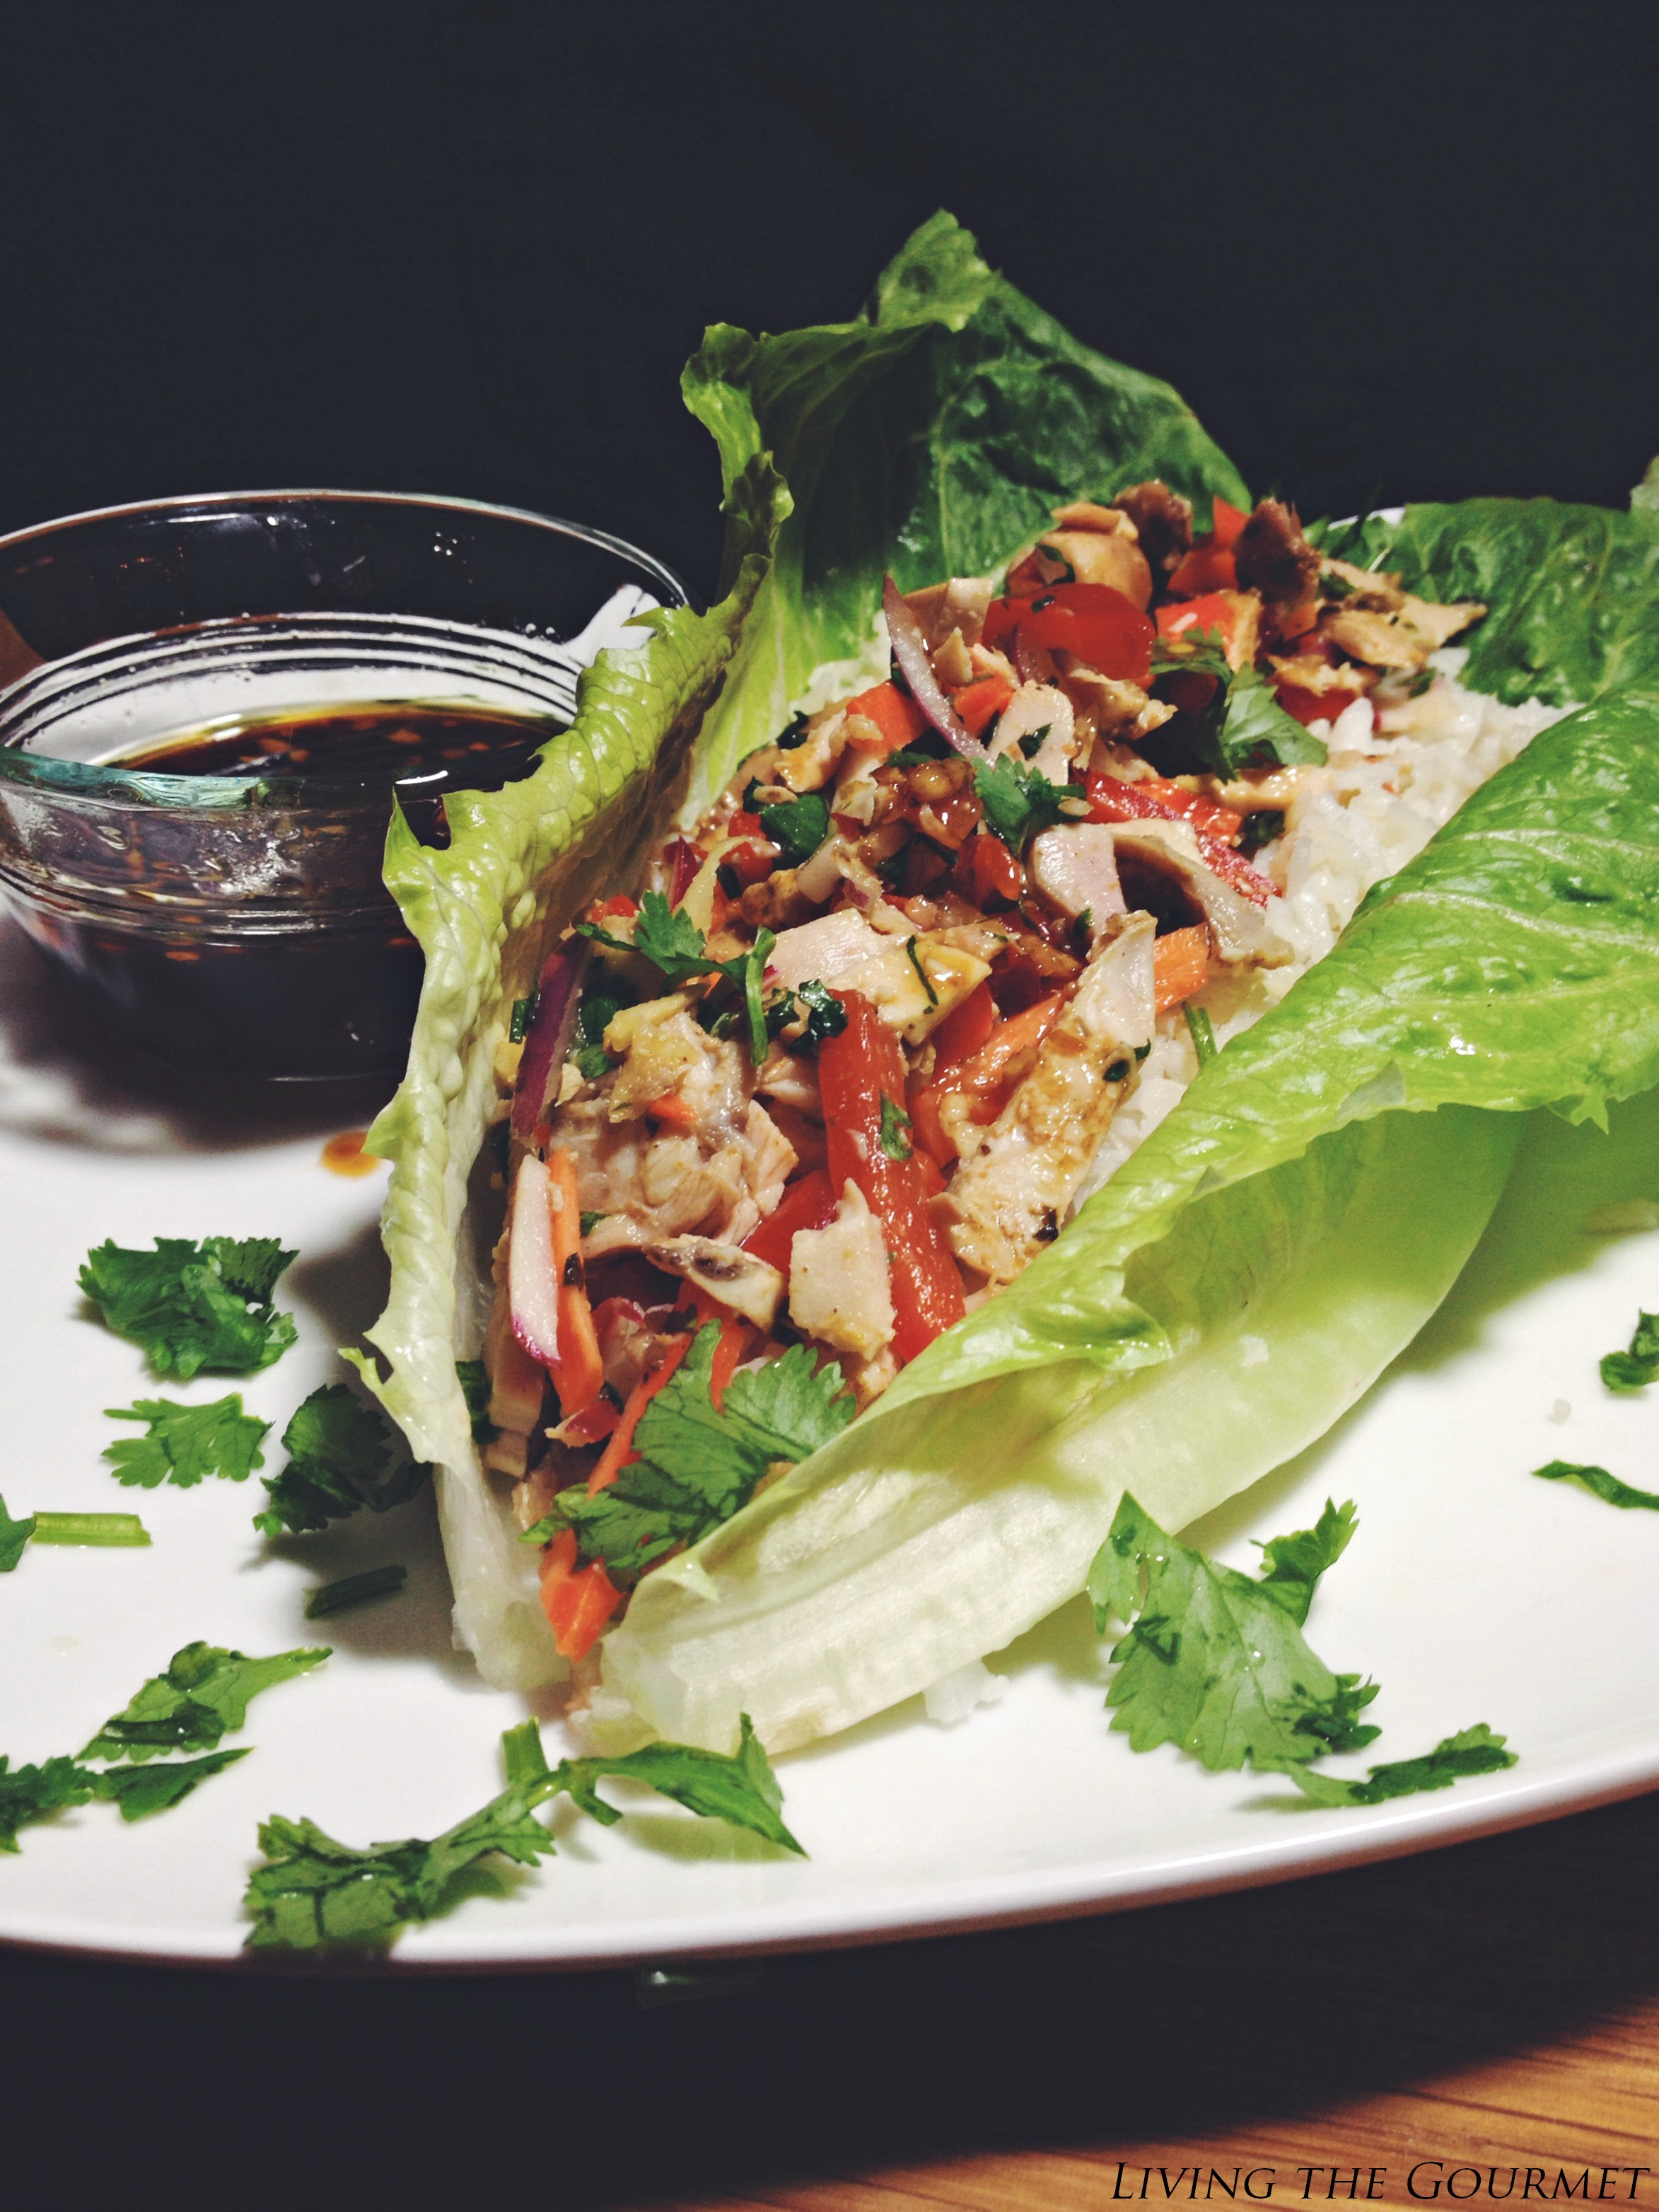 Living the Gourmet: Asian Style Chicken Salad